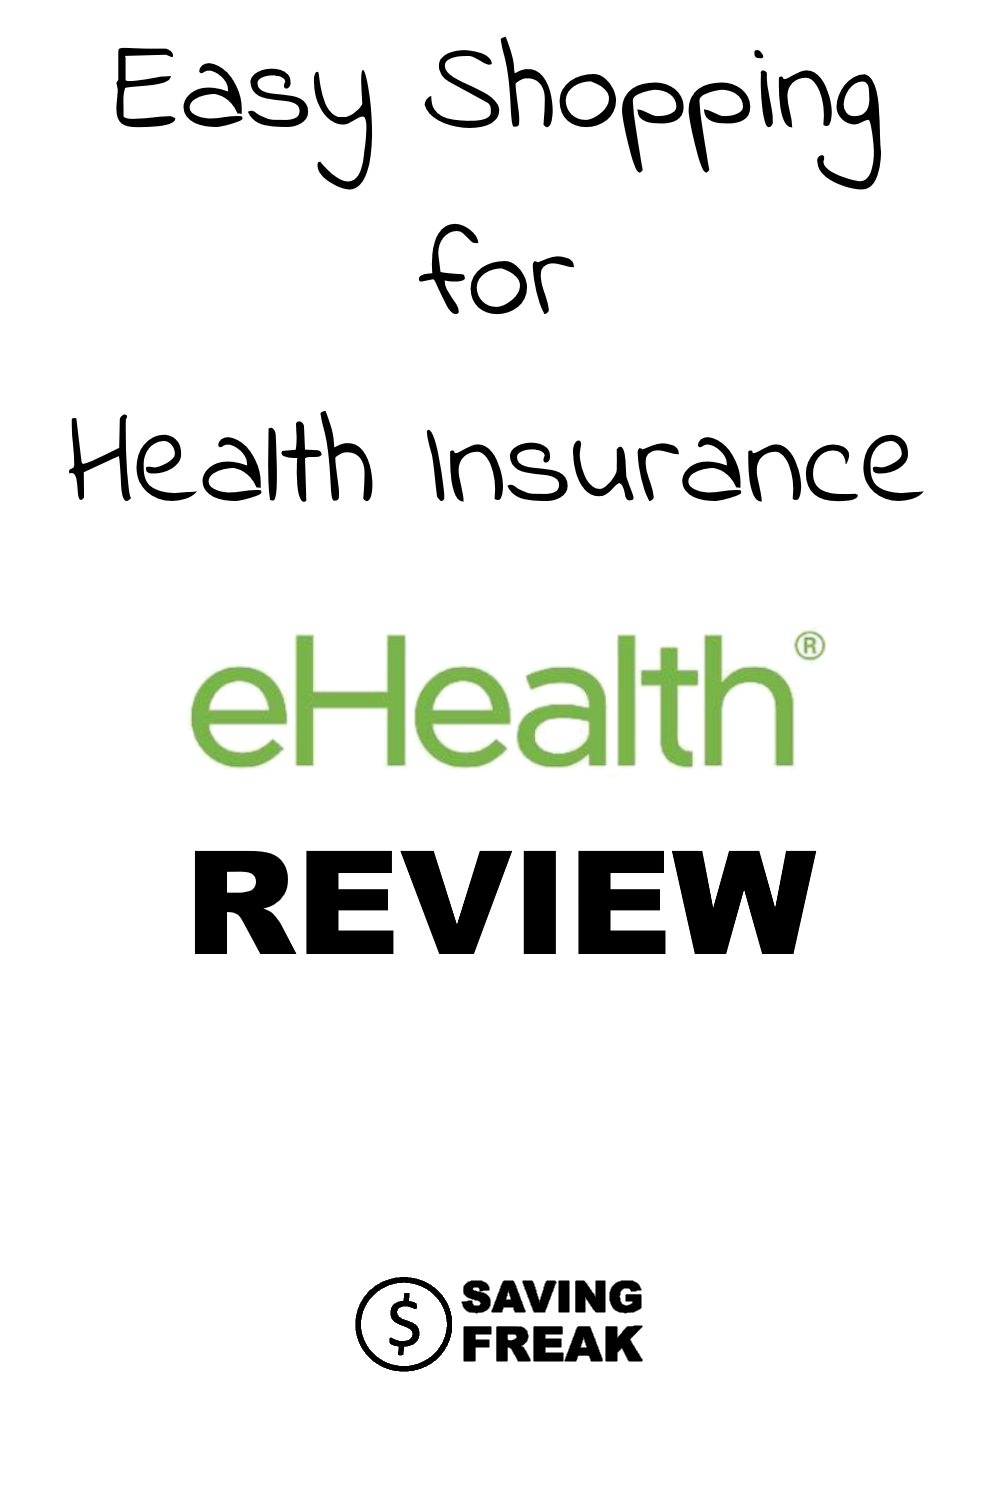 ehealth insurance review